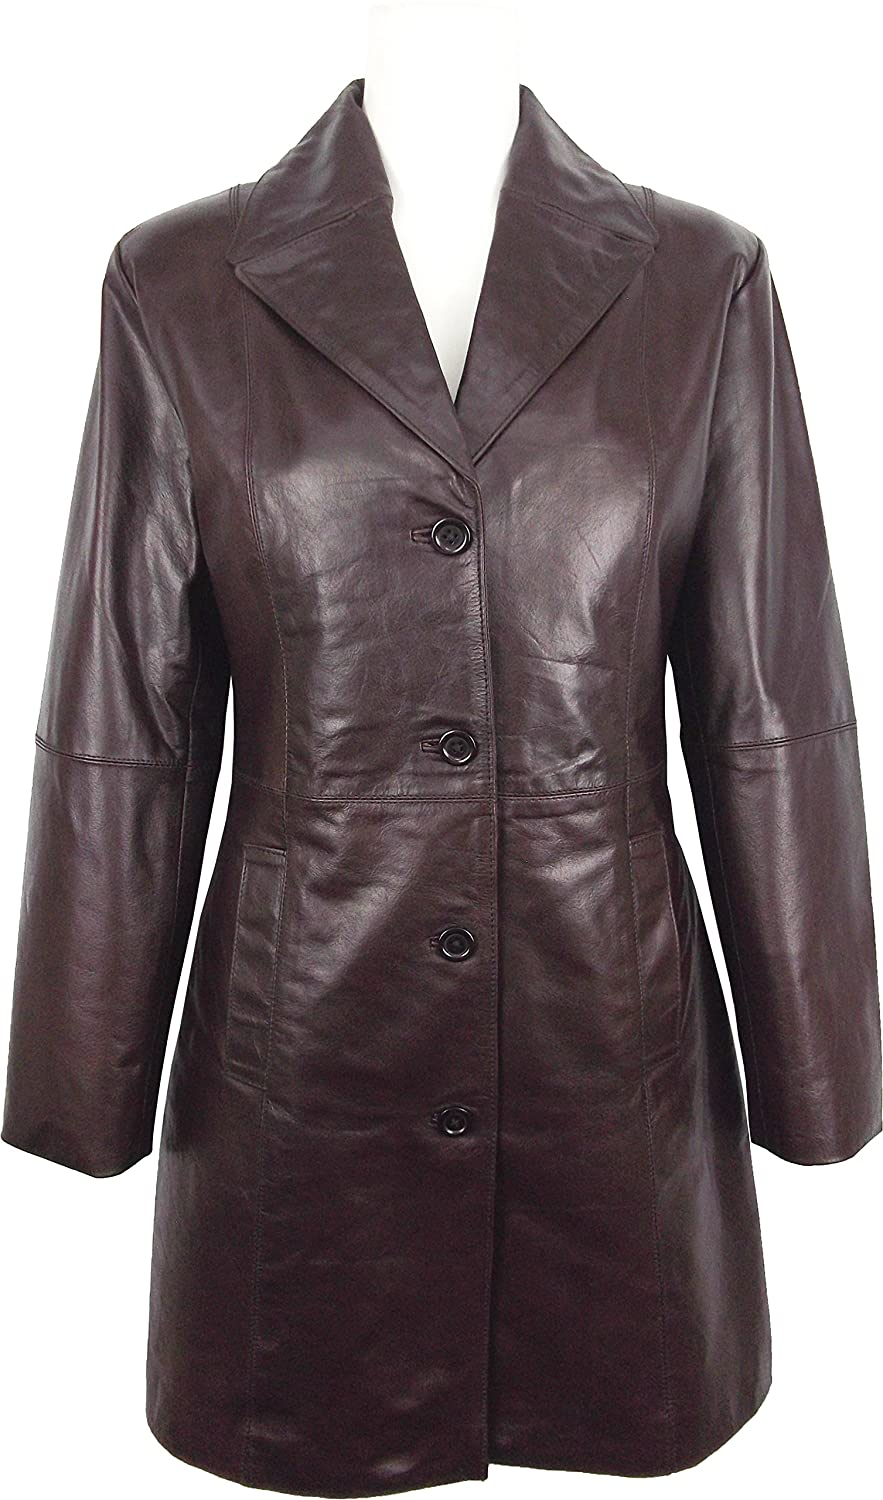 760e5c214a36 Unicorn Womens Three Quarter Length Coat Real Leather Jacket - Glazed Brown  #GO at Amazon Women's Coats Shop